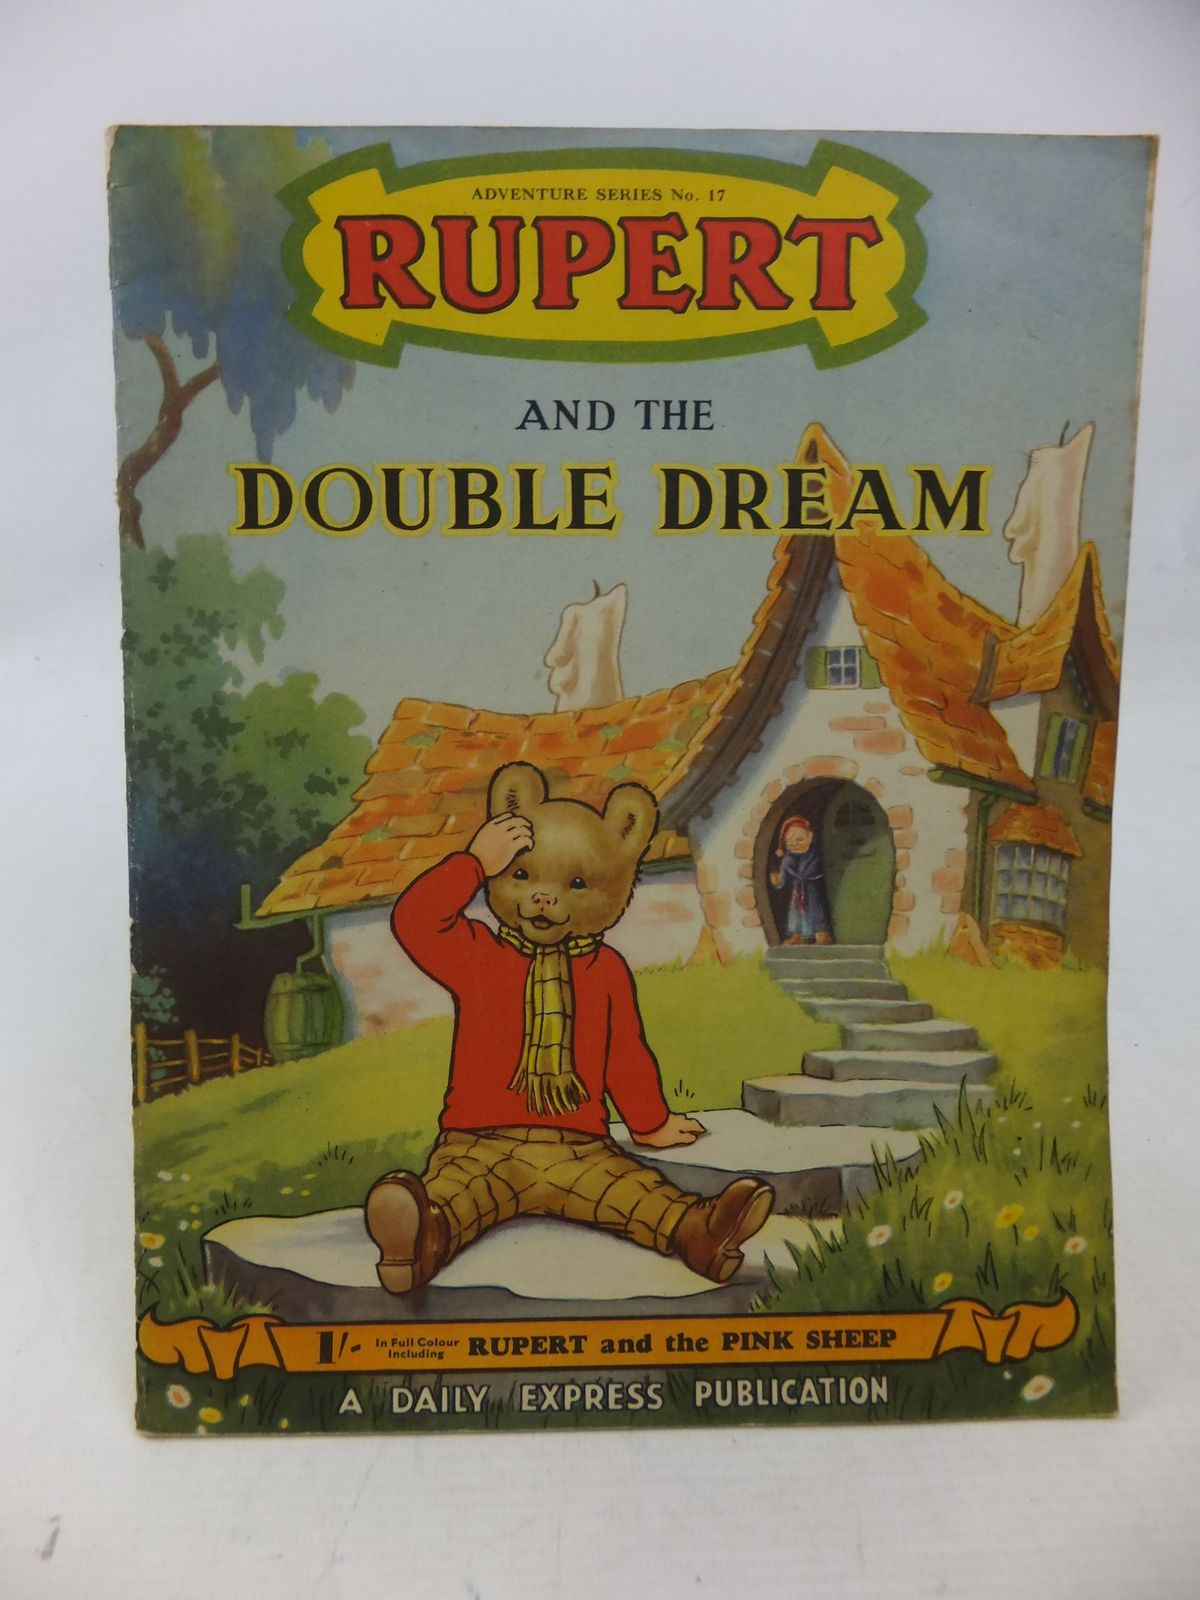 Photo of RUPERT ADVENTURE SERIES No. 17 - RUPERT AND THE DOUBLE DREAM- Stock Number: 1109173